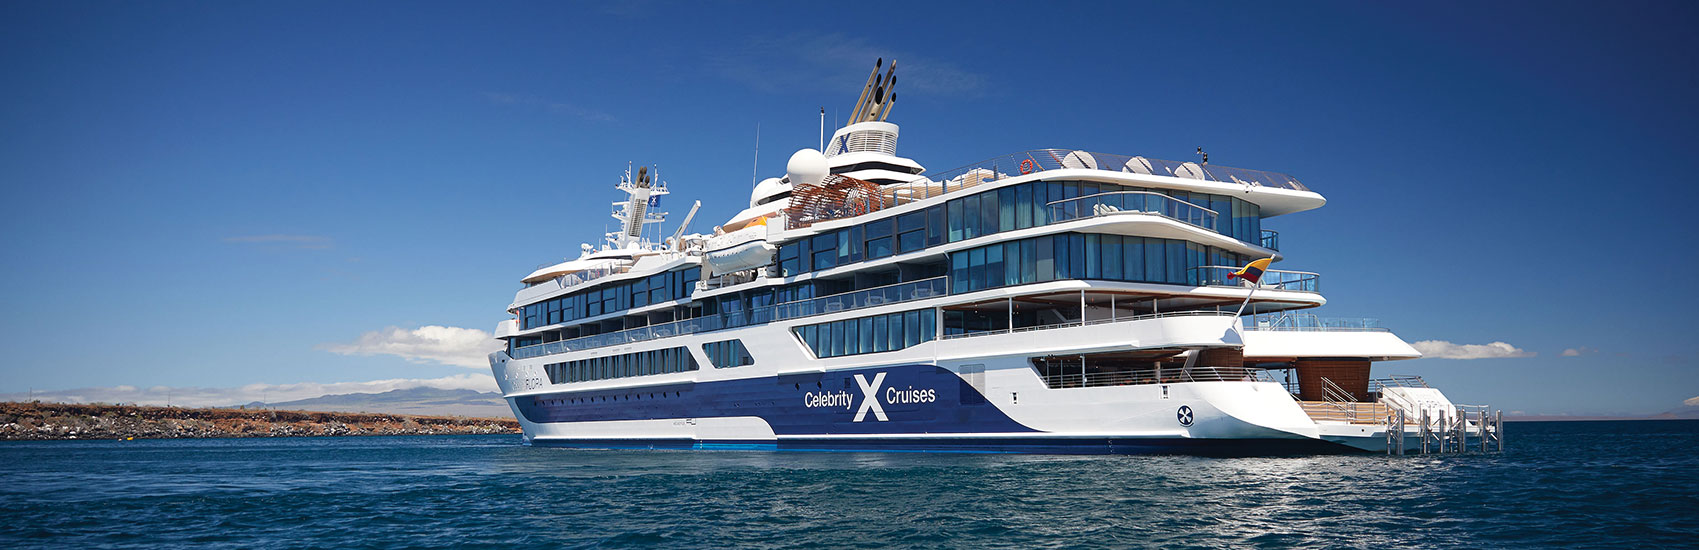 Explore the Galapagos on an All Suite Luxury Mega Yacht